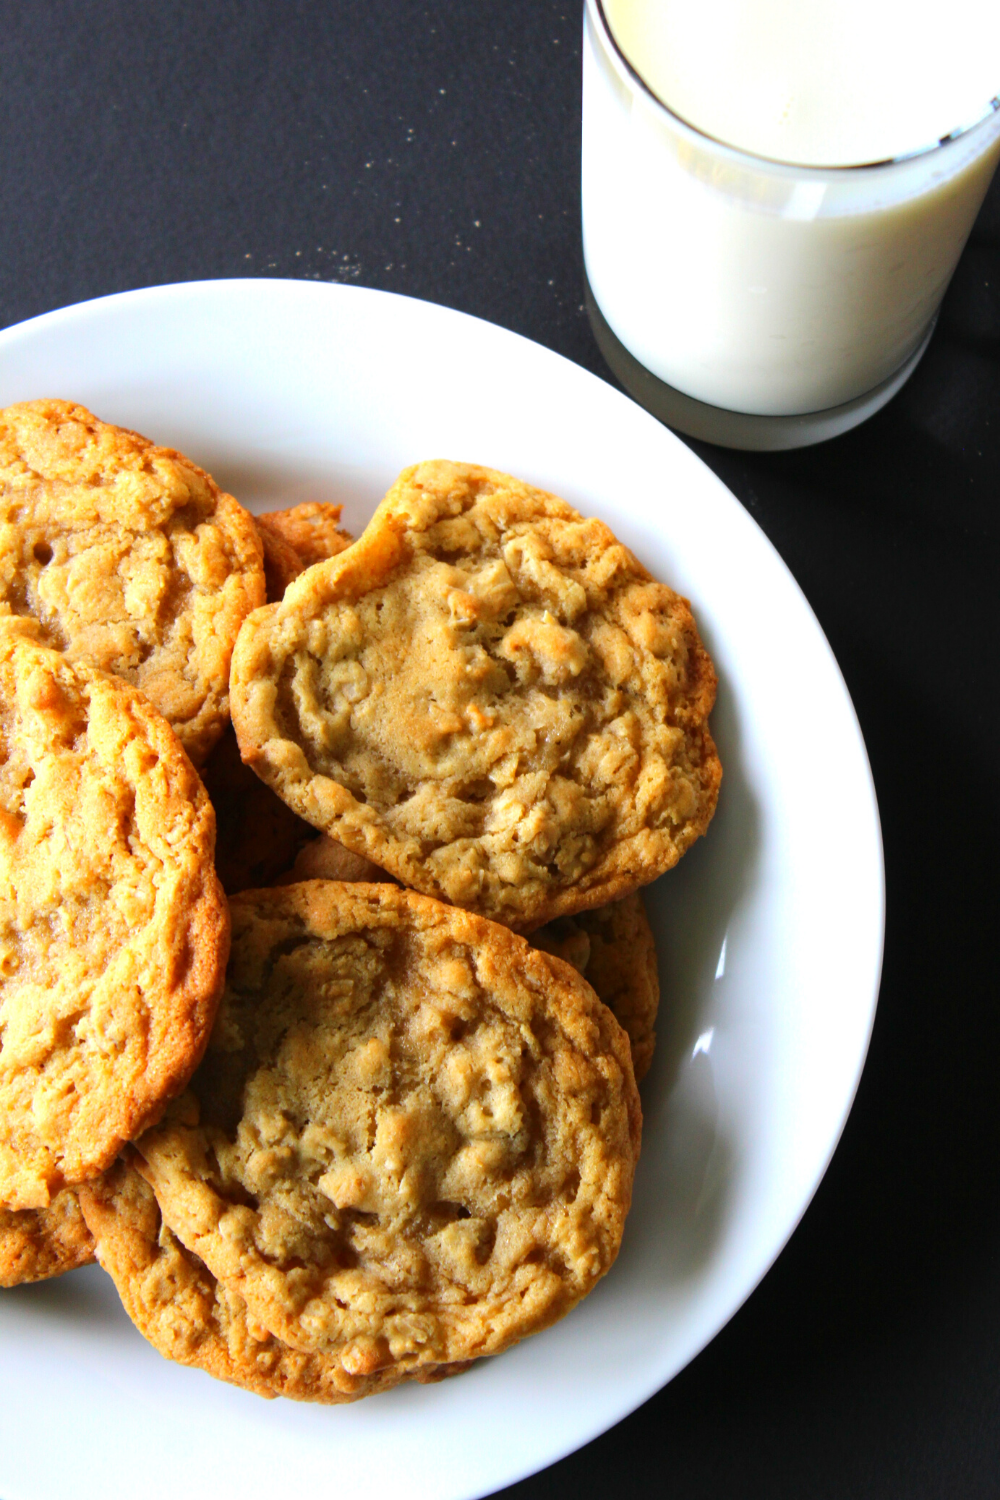 Soft & Chewy Oatmeal Cookies Easy Recipe The Best Quaker Oatmeal Cookies Simple Quaker Oats My Farmhouse Table